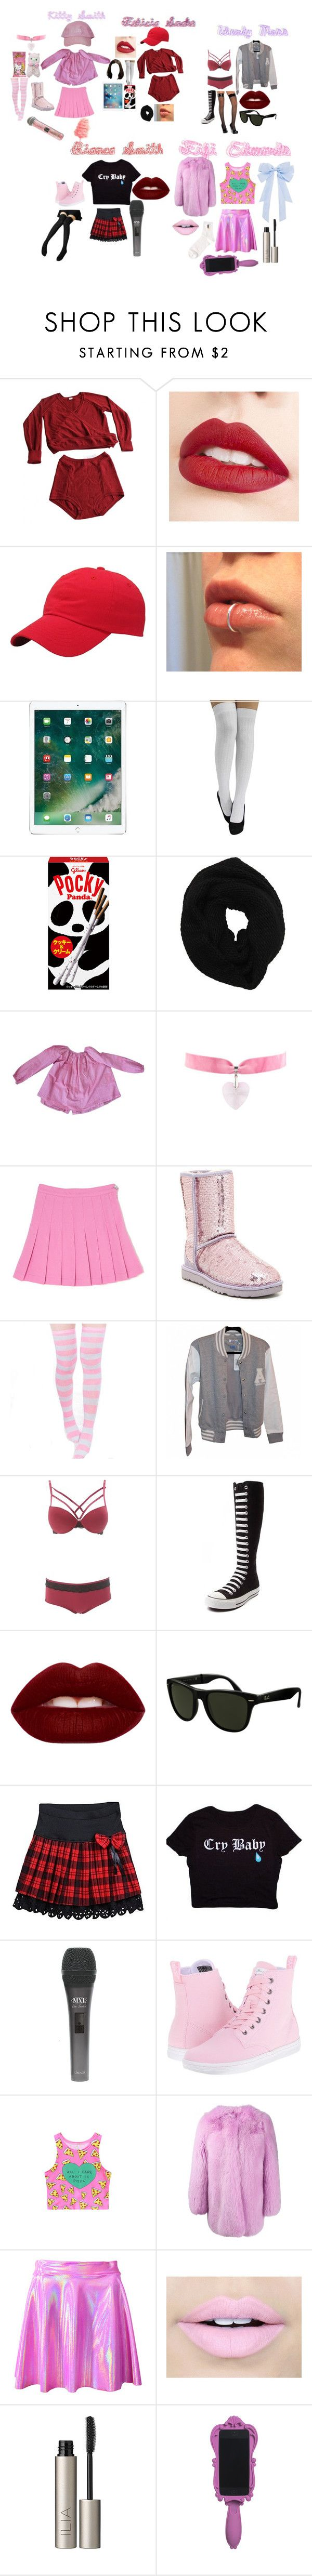 """""""L E T S  G O  G I R L S"""" by misskaya1012 ❤ liked on Polyvore featuring Eres, Jouer, Apple, Wyatt, Hello Kitty, UGG Australia, adidas, Charlotte Russe, Converse and Lime Crime"""